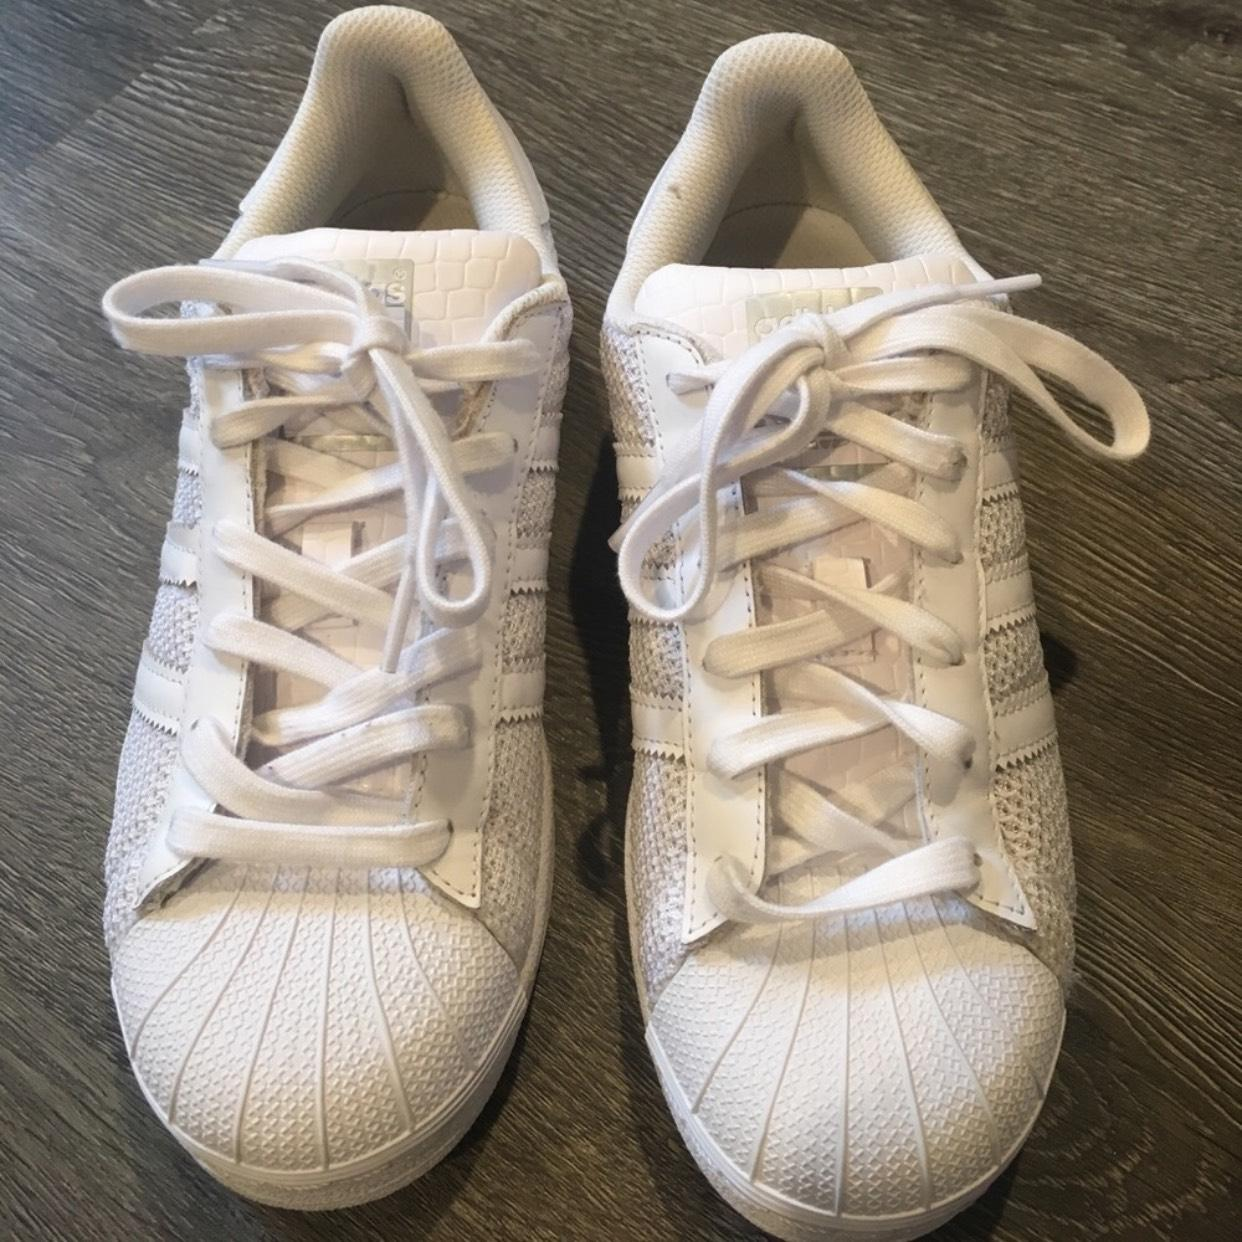 adidas Superstar Sneakers Size US 6.5 Regular (M, B)